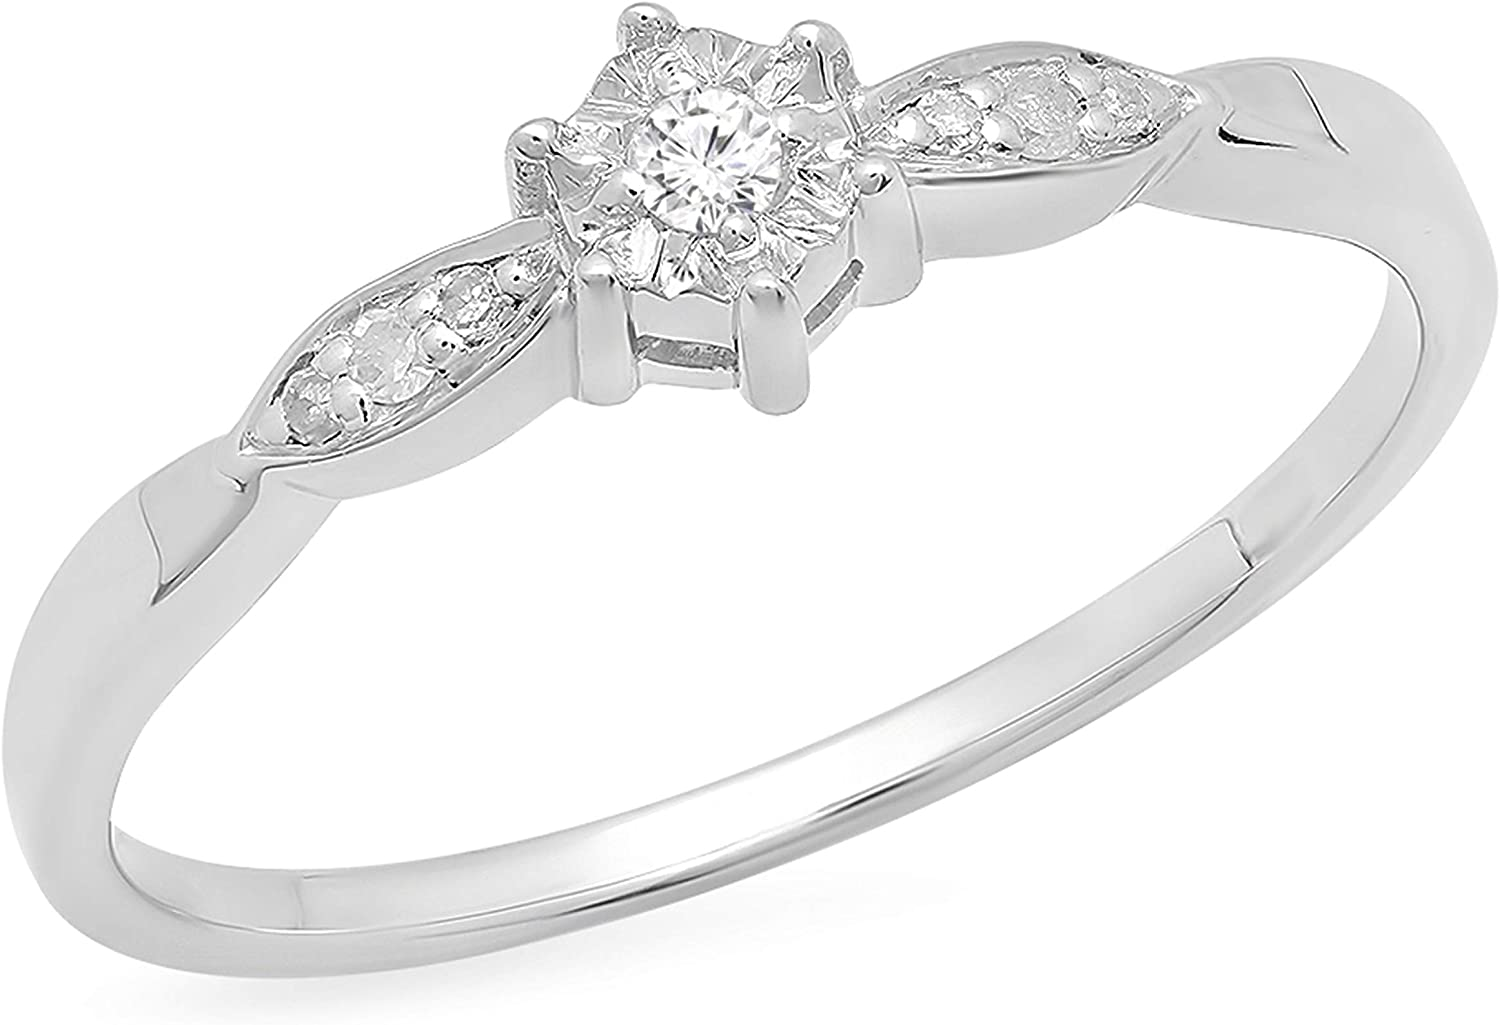 Dazzlingrock Collection 0.05 Carat ctw Limited 35% OFF time trial price Round White Diamond Lad